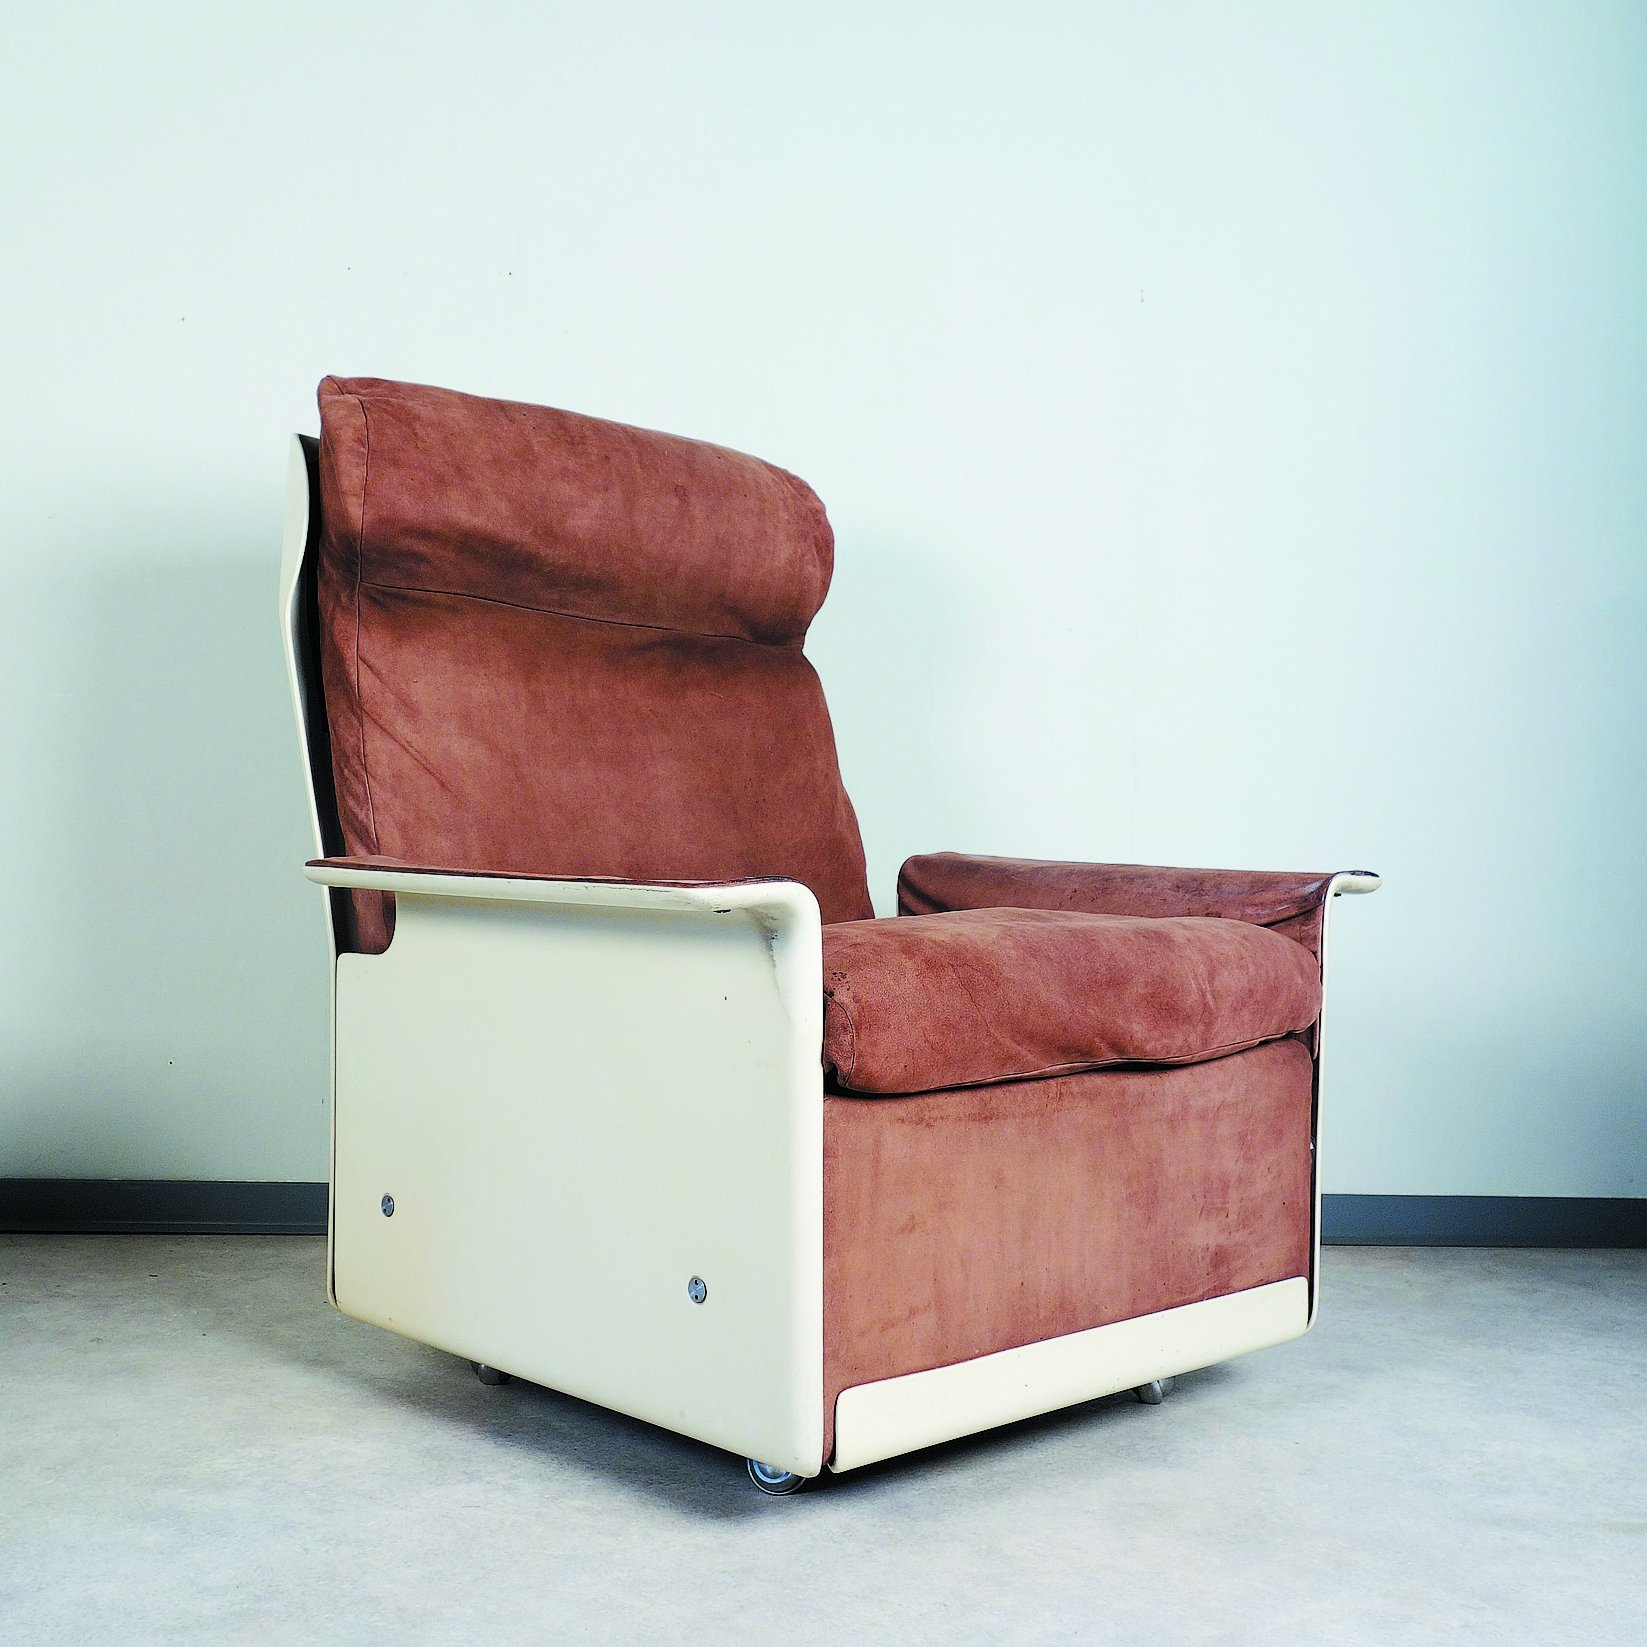 programm 620 lounge chair by dieter rams for vitsoe 1970s